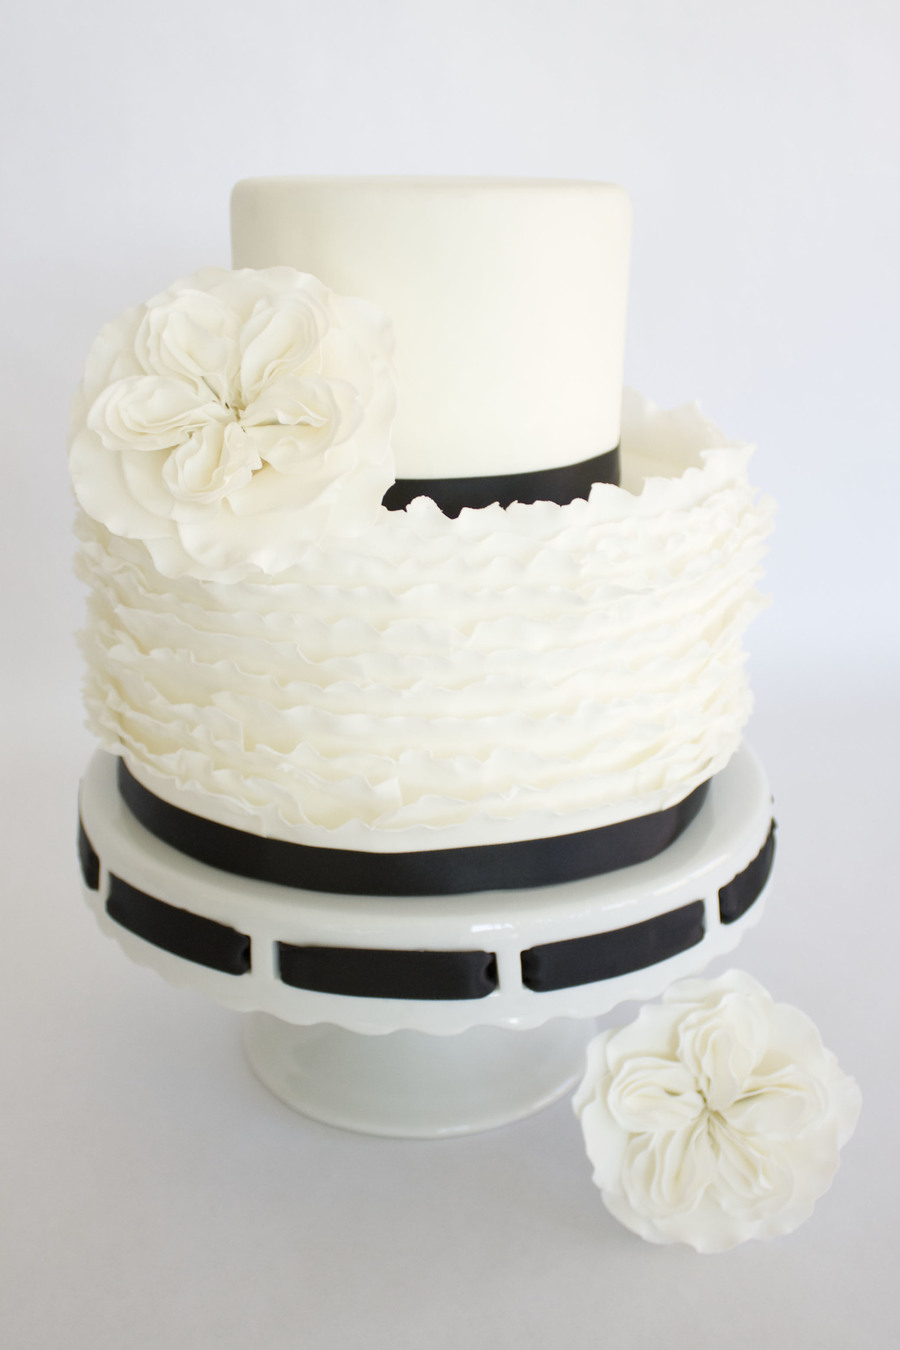 Fondant Ruffle Cake With English Cabbage Roses on Cake Central